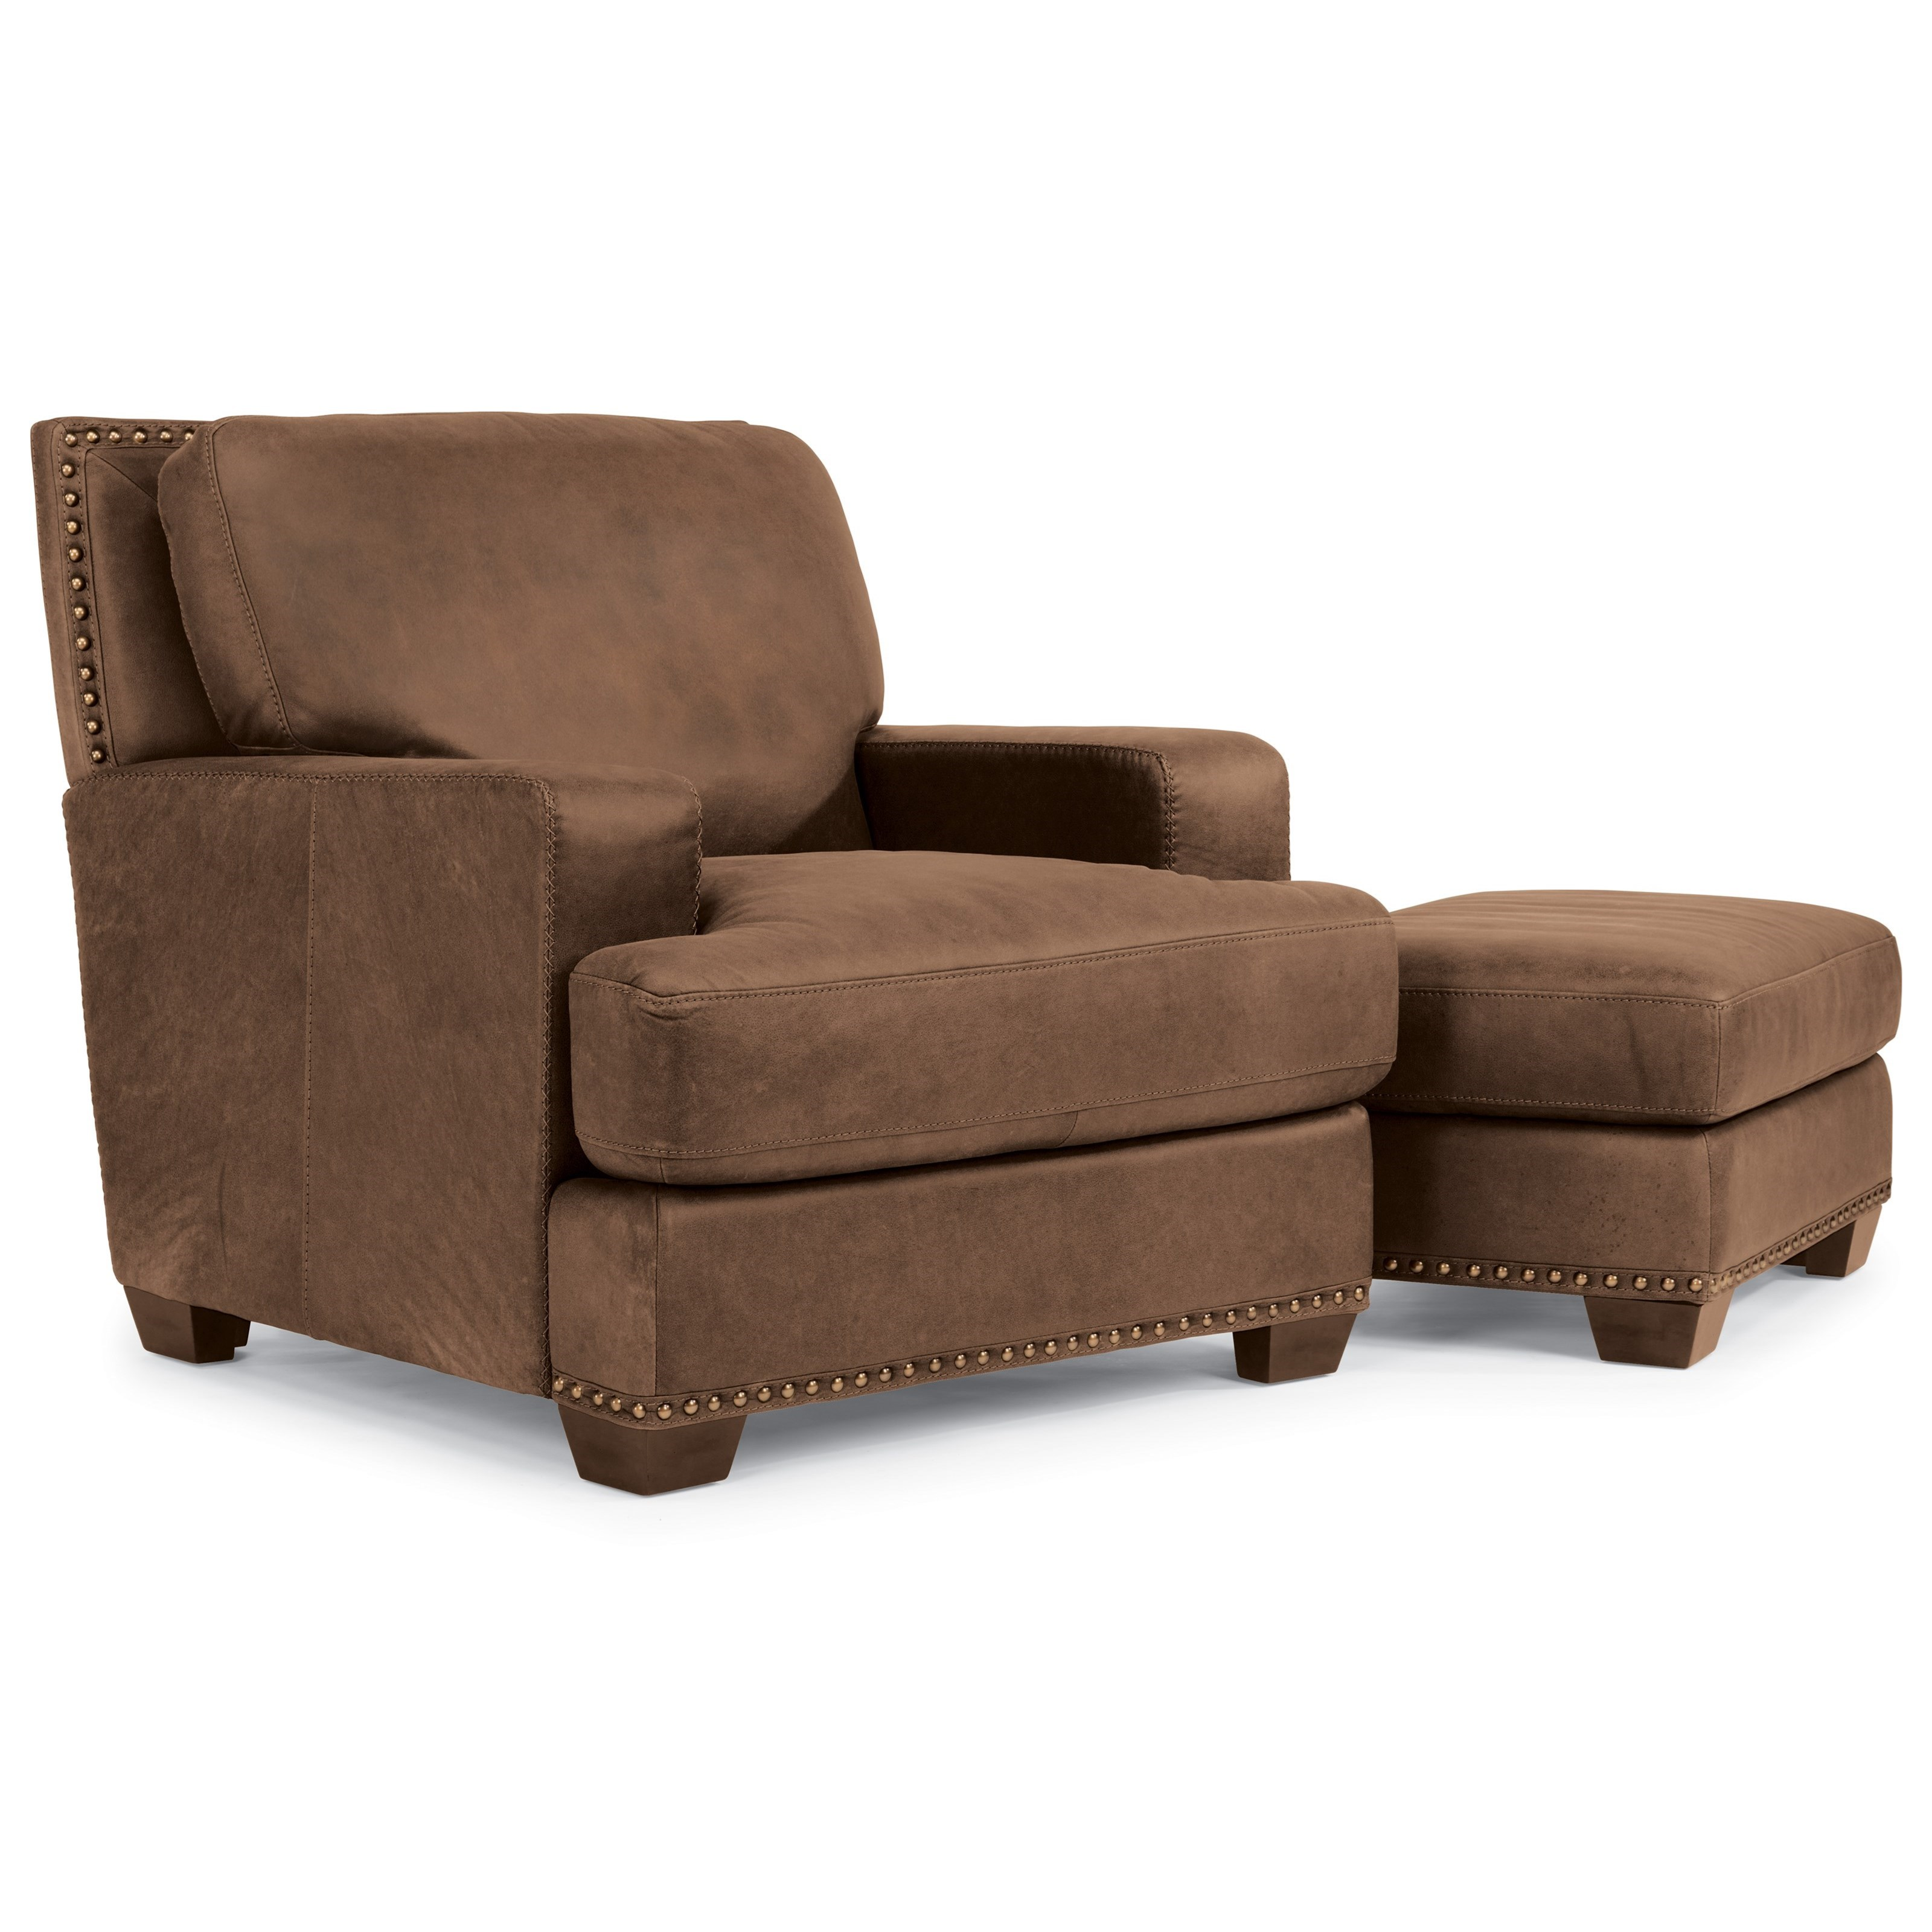 Flexsteel Latitudes-Fremont Leather Chair and Ottoman - Item Number: 1324-10+08